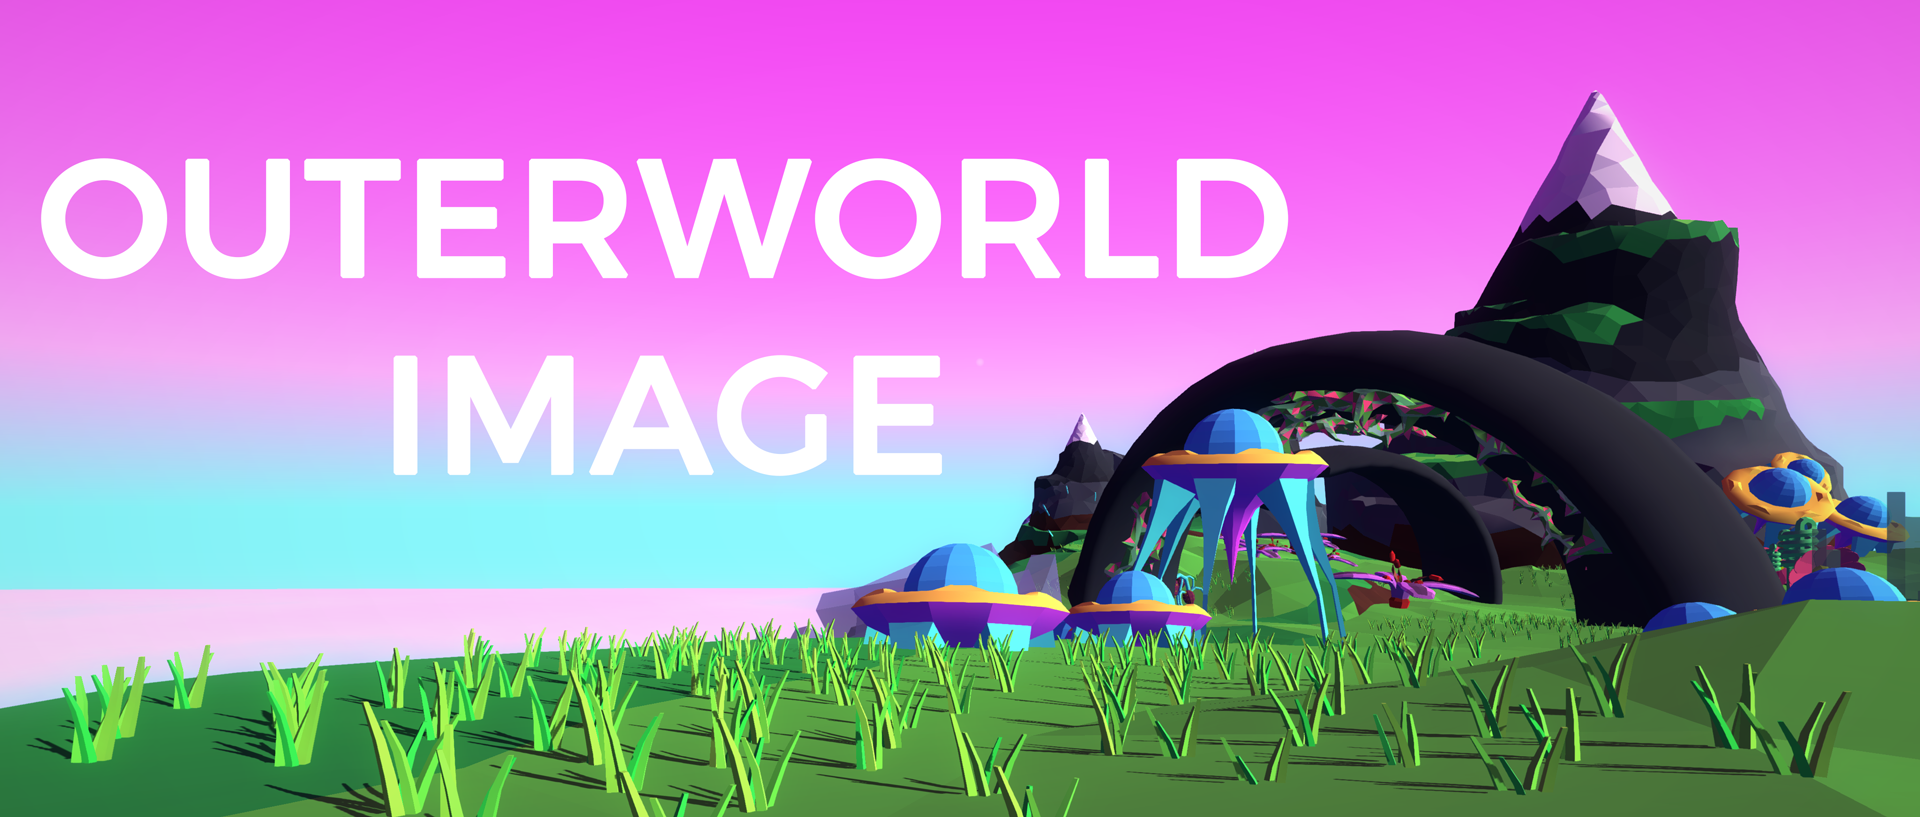 Outerworld Image